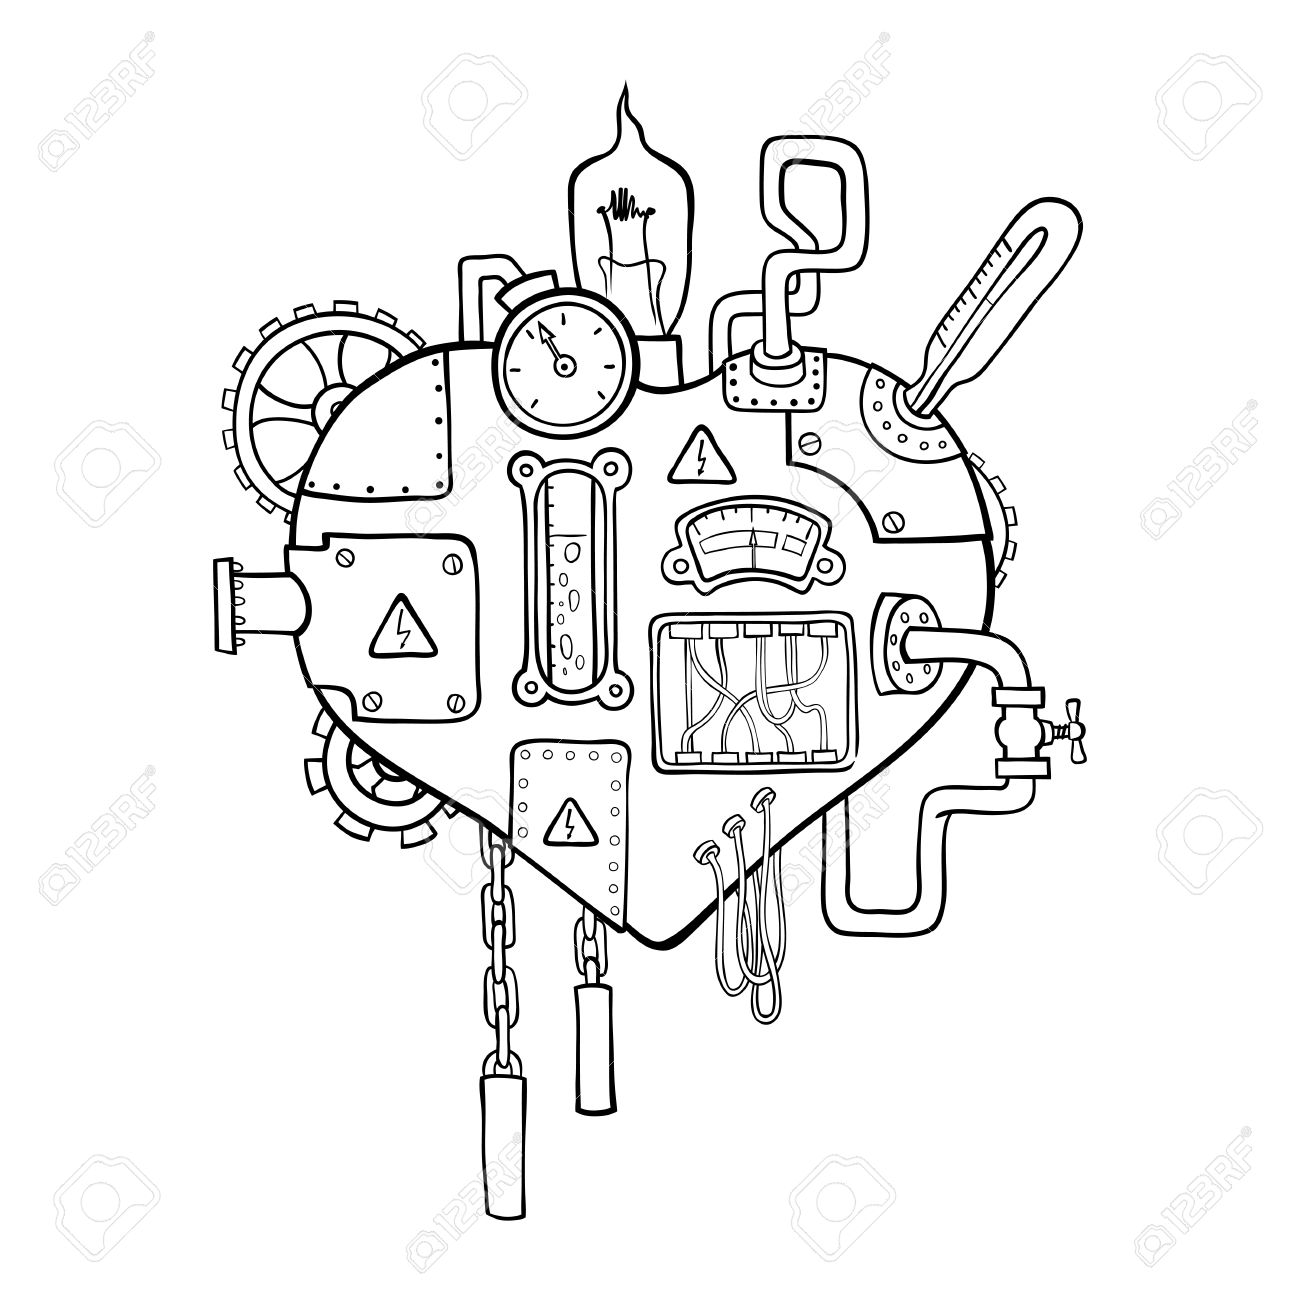 1300x1300 Stylized Graphic Image Of The Mechanical Heart, Embedded